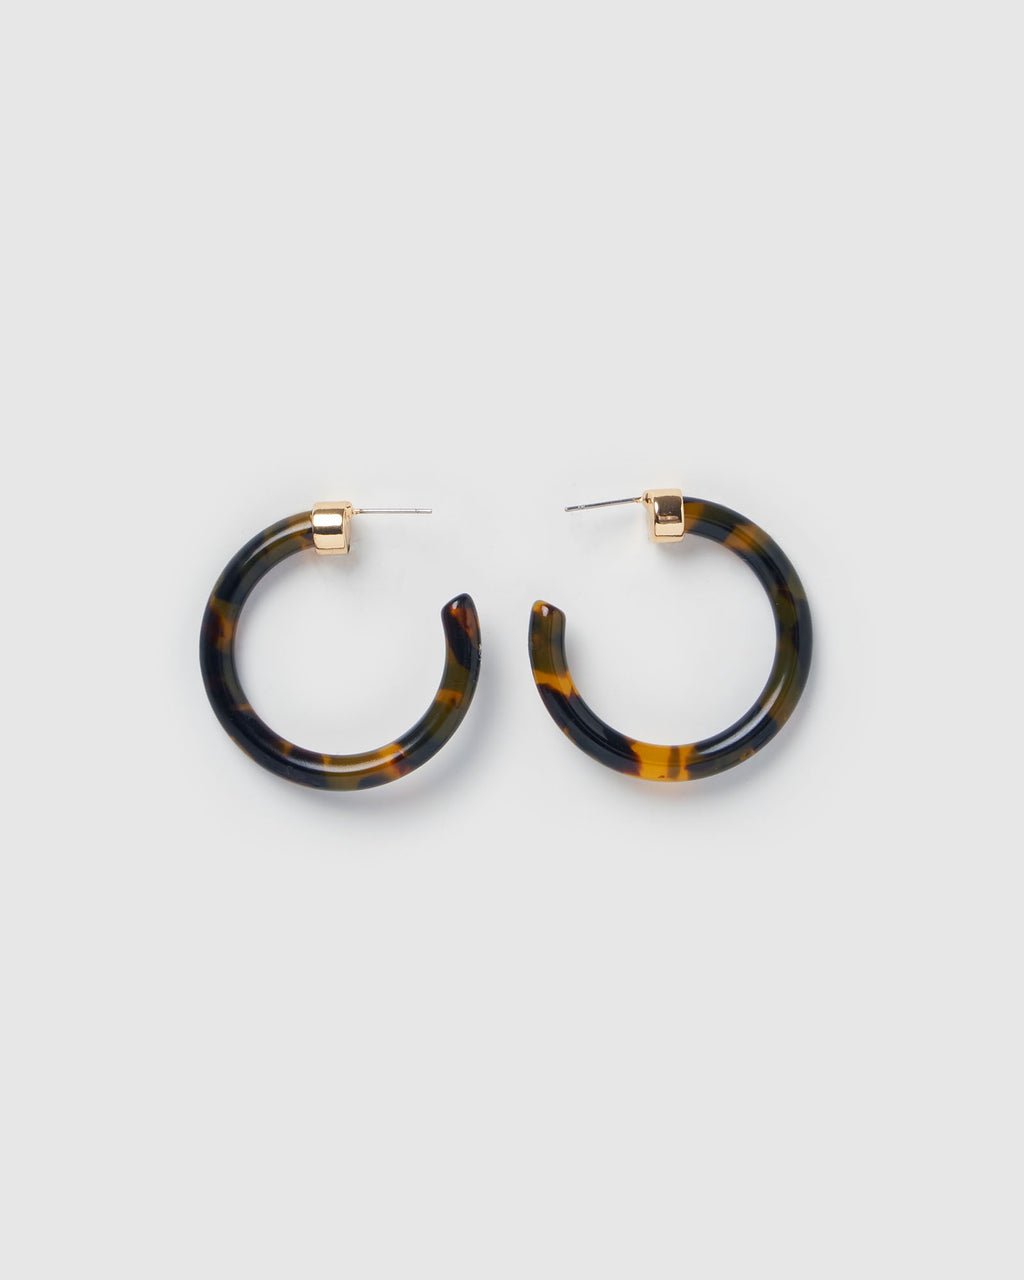 Izoa Olivia Hoop Earrings Tortoise Shell Gold